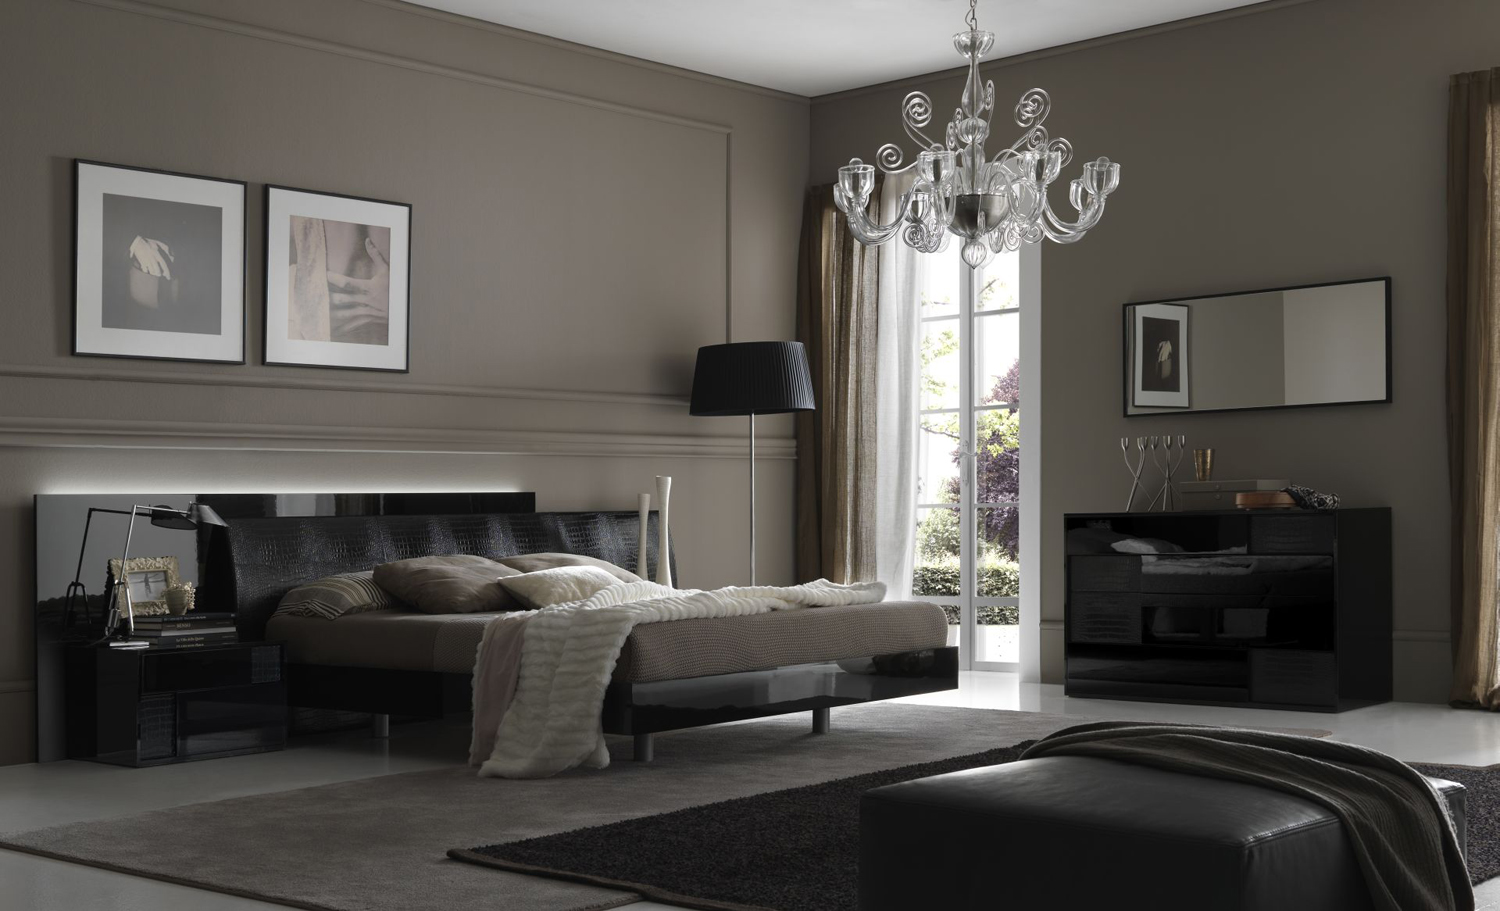 Bedroom decorating ideas from evinco for Bedroom decorating gallery